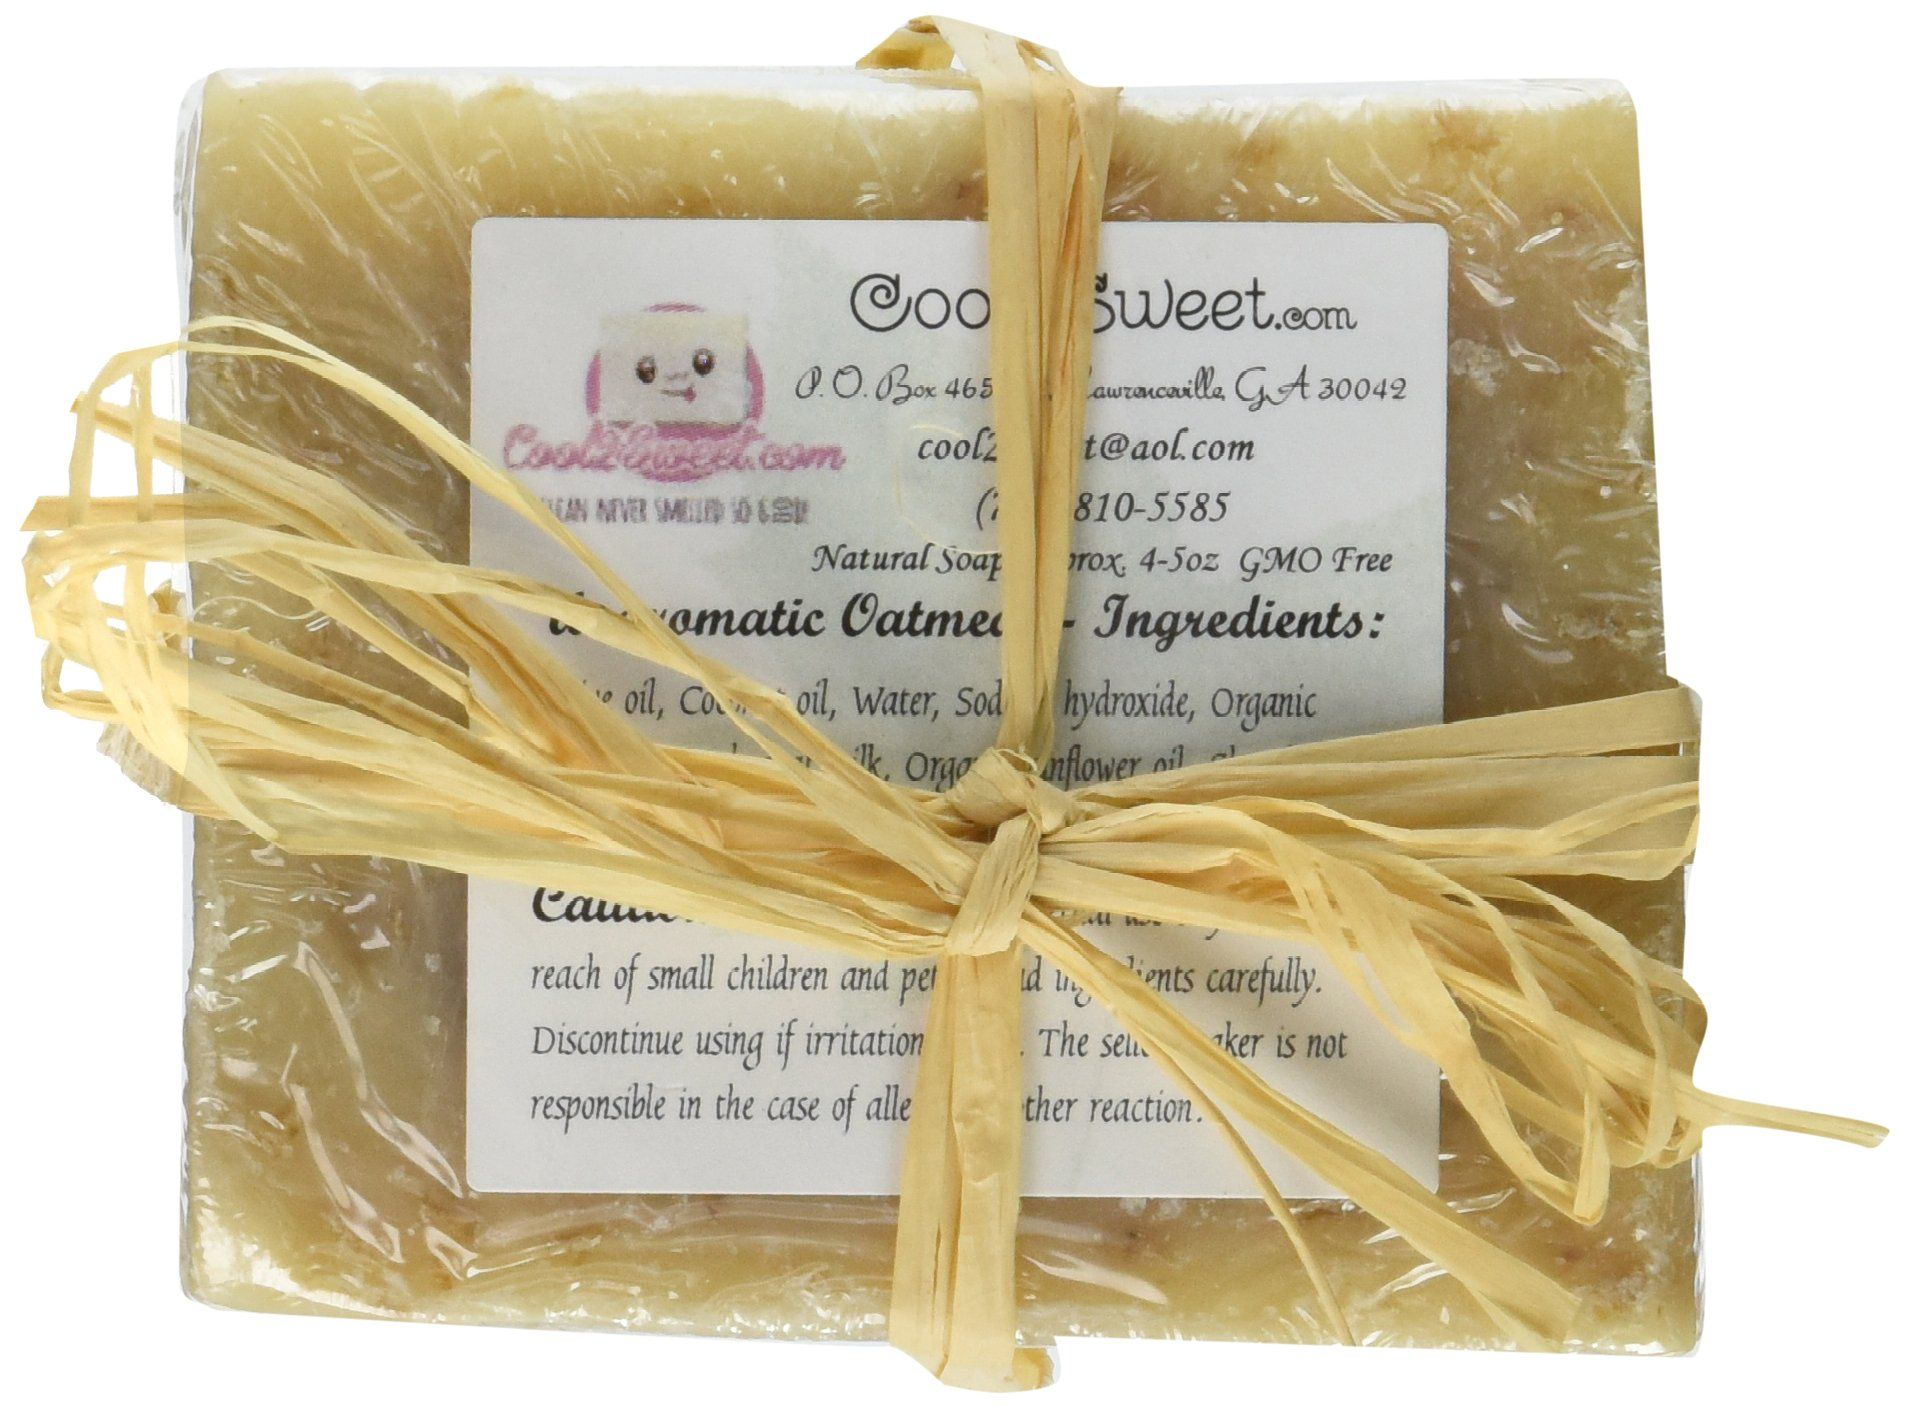 Cool 2 Sweet Soap All Natural Oatmeal Shea Butter Soap